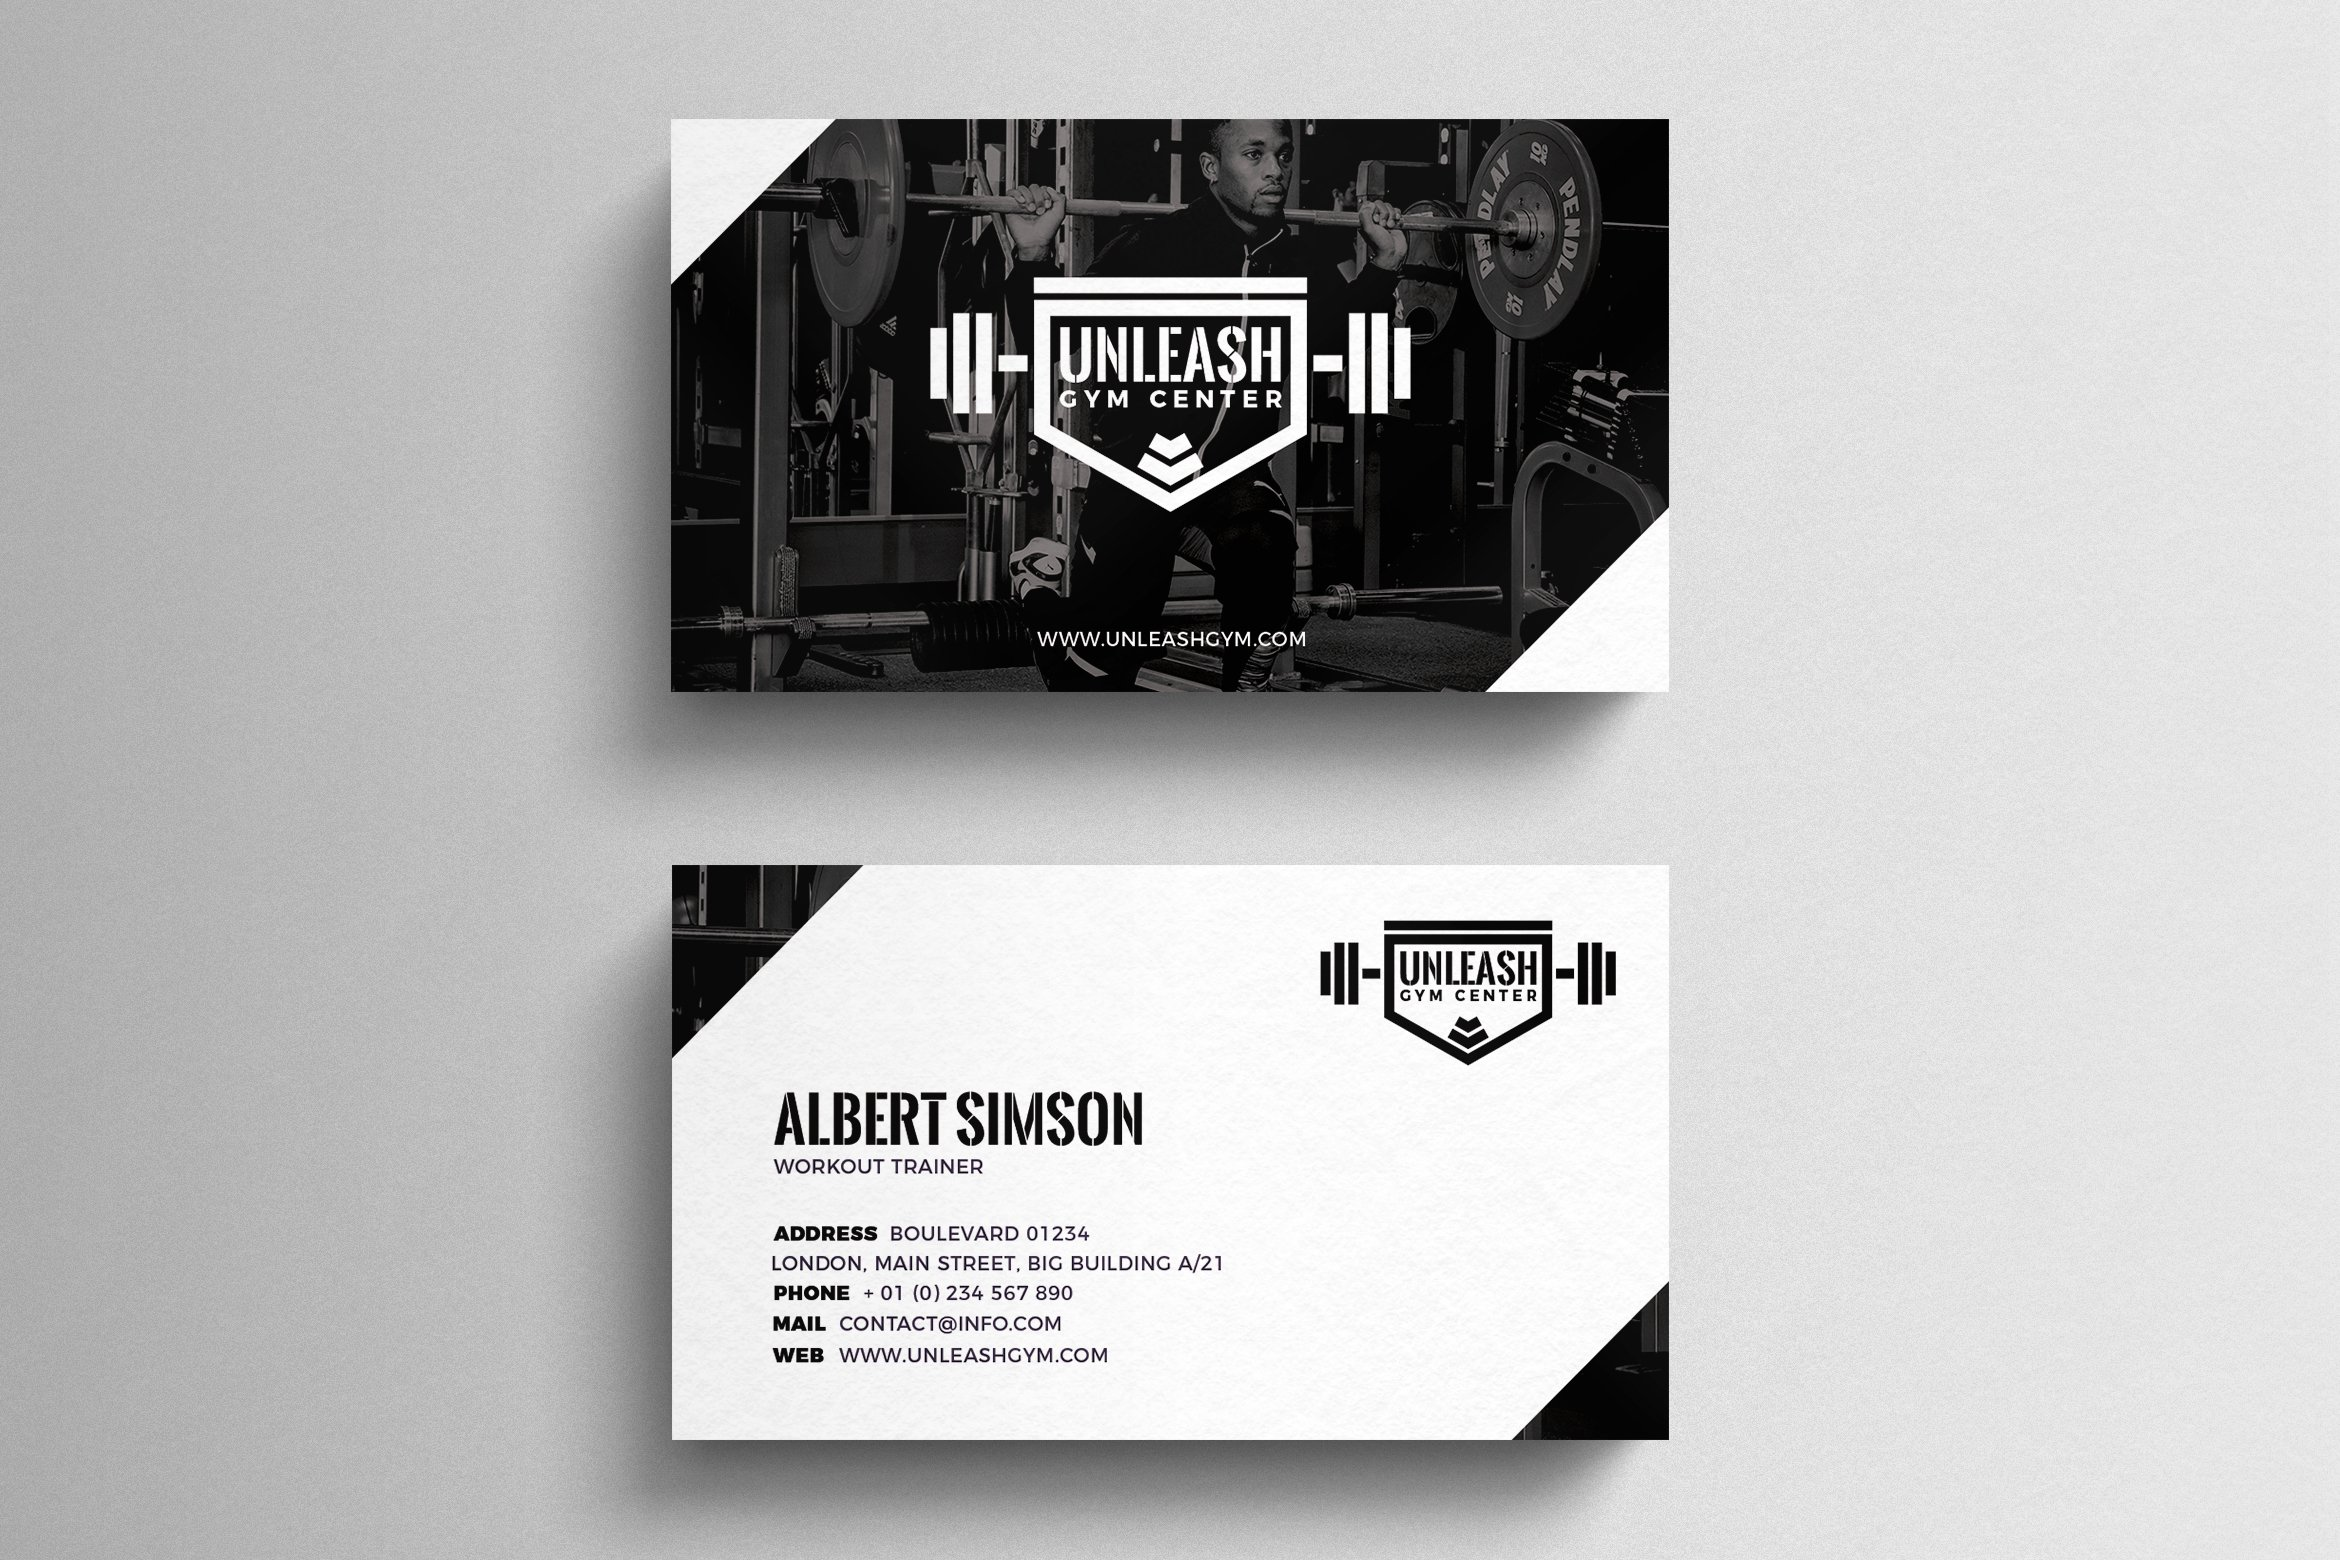 Gym Business Card Template ~ Business Card Templates ~ Creative Market